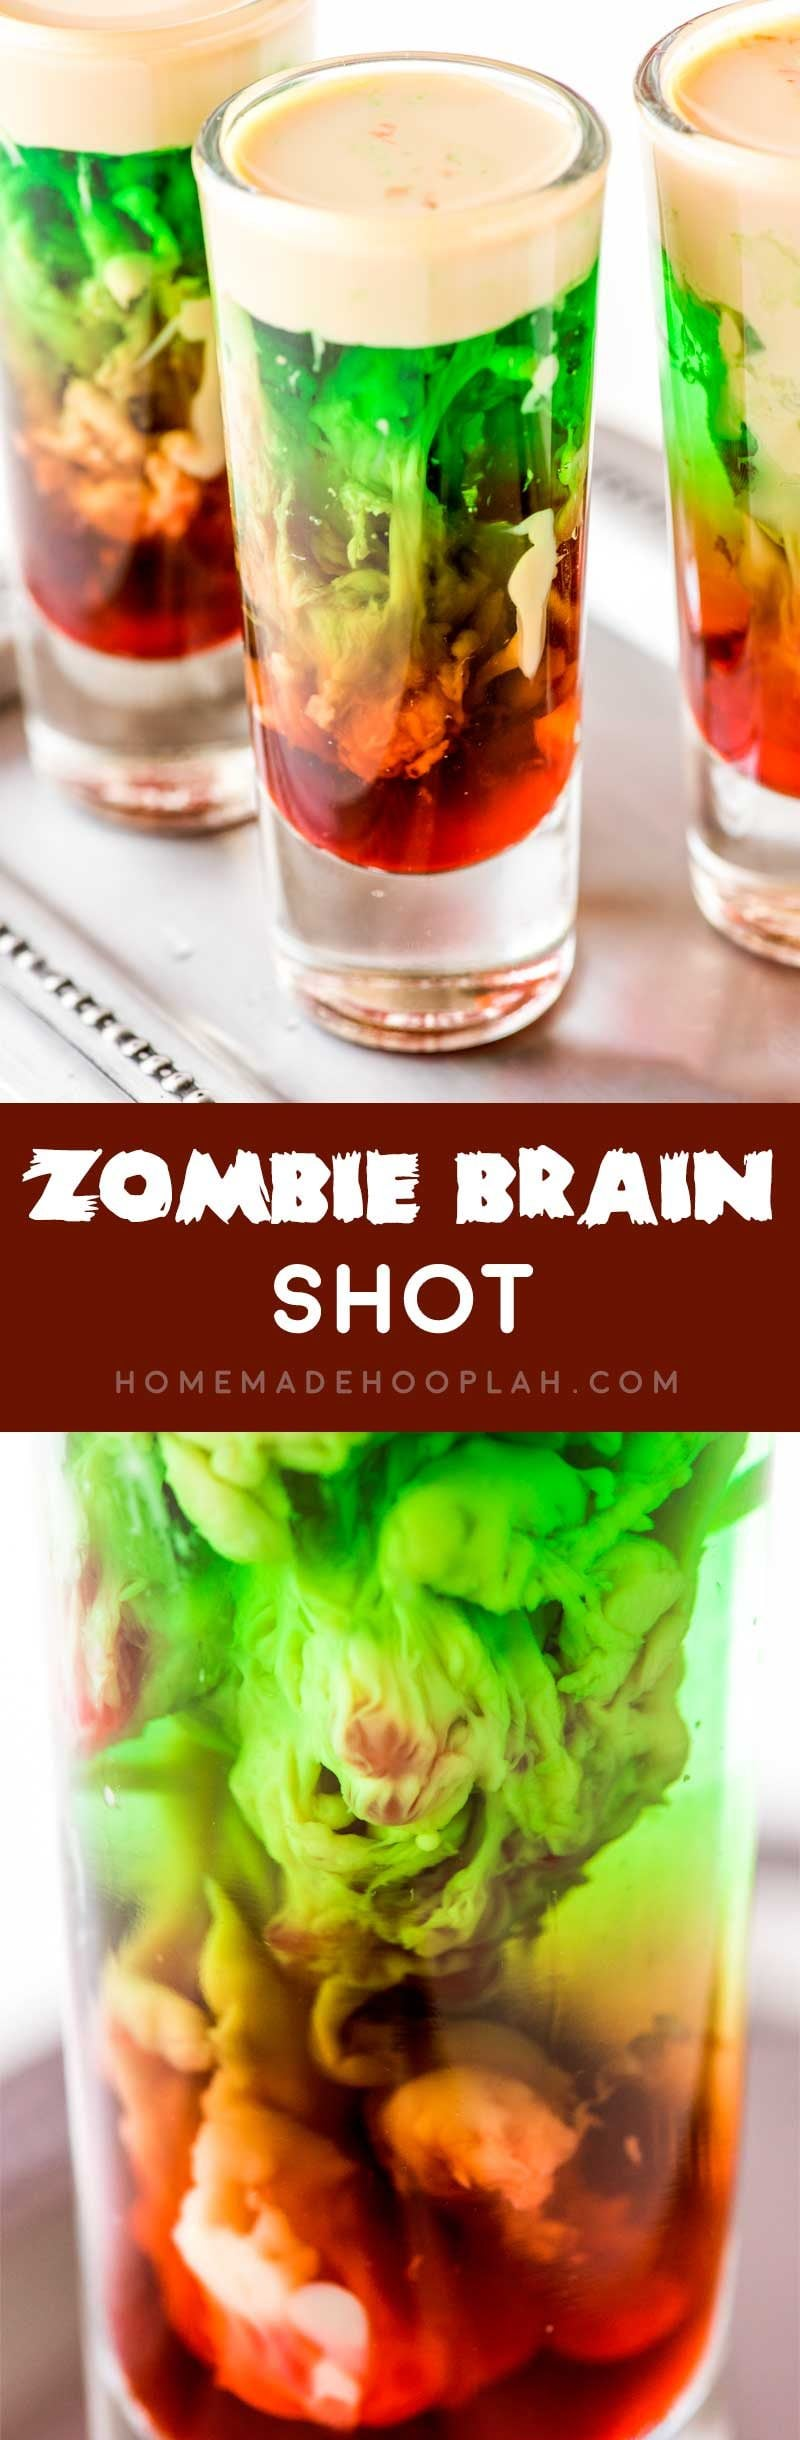 Full tutorial on how to make a zombie brain hemorrhage shot.